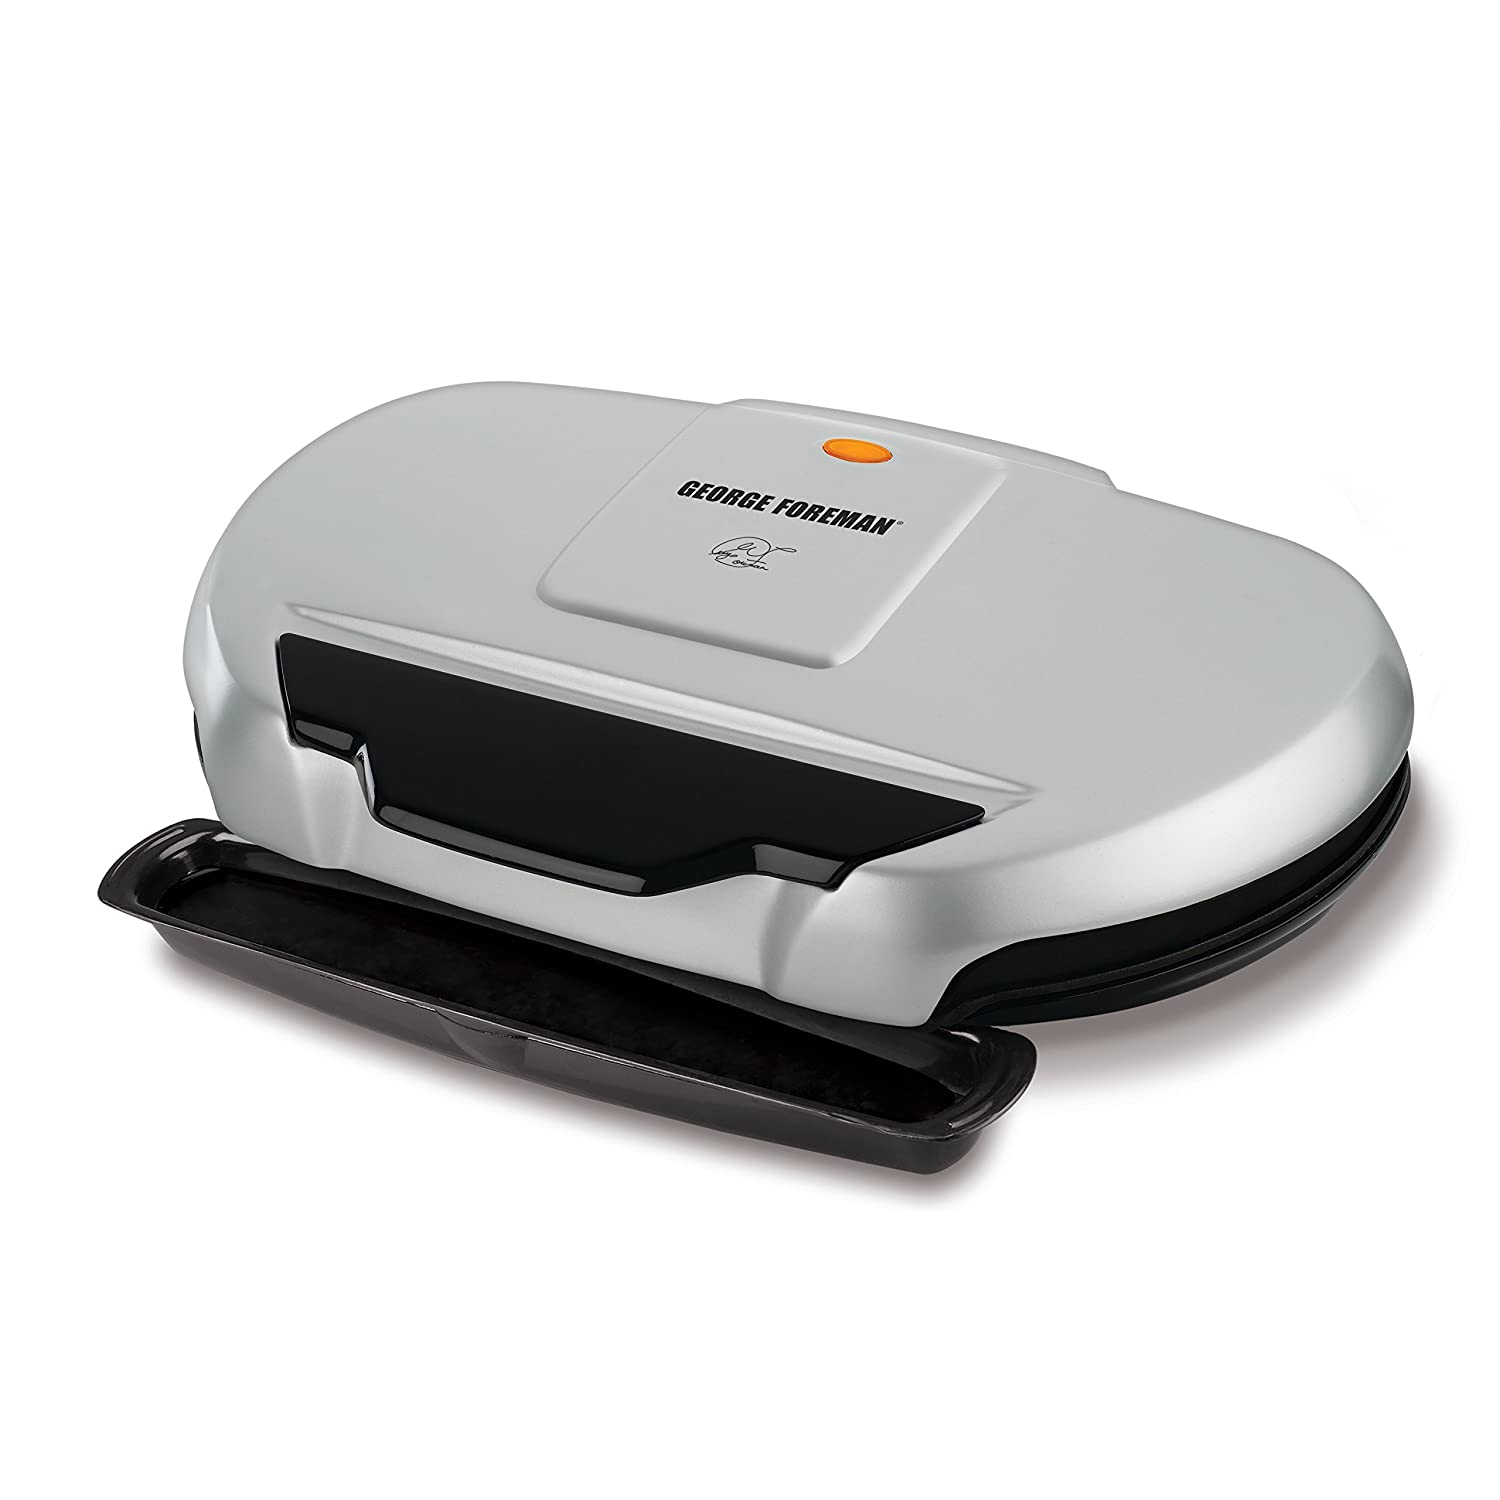 George Foreman 9-Serving Classic Plate Electric Grill GR144